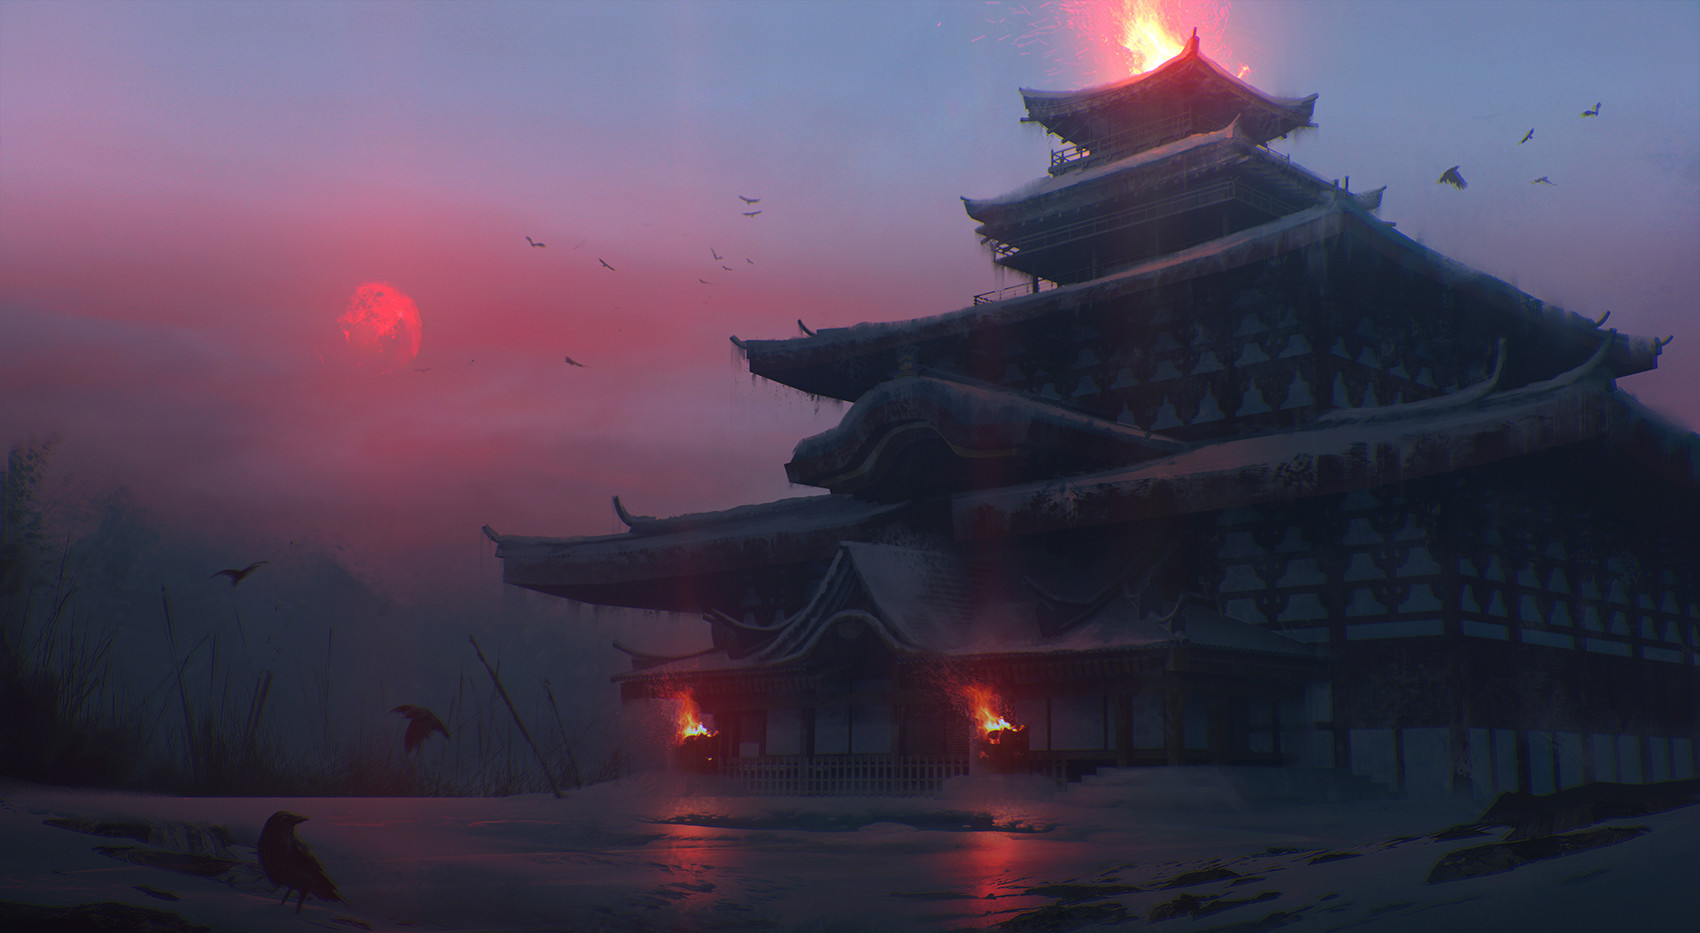 General 1700x933 Quentin BOUILLOUD artwork digital art Japan Feudal Japan